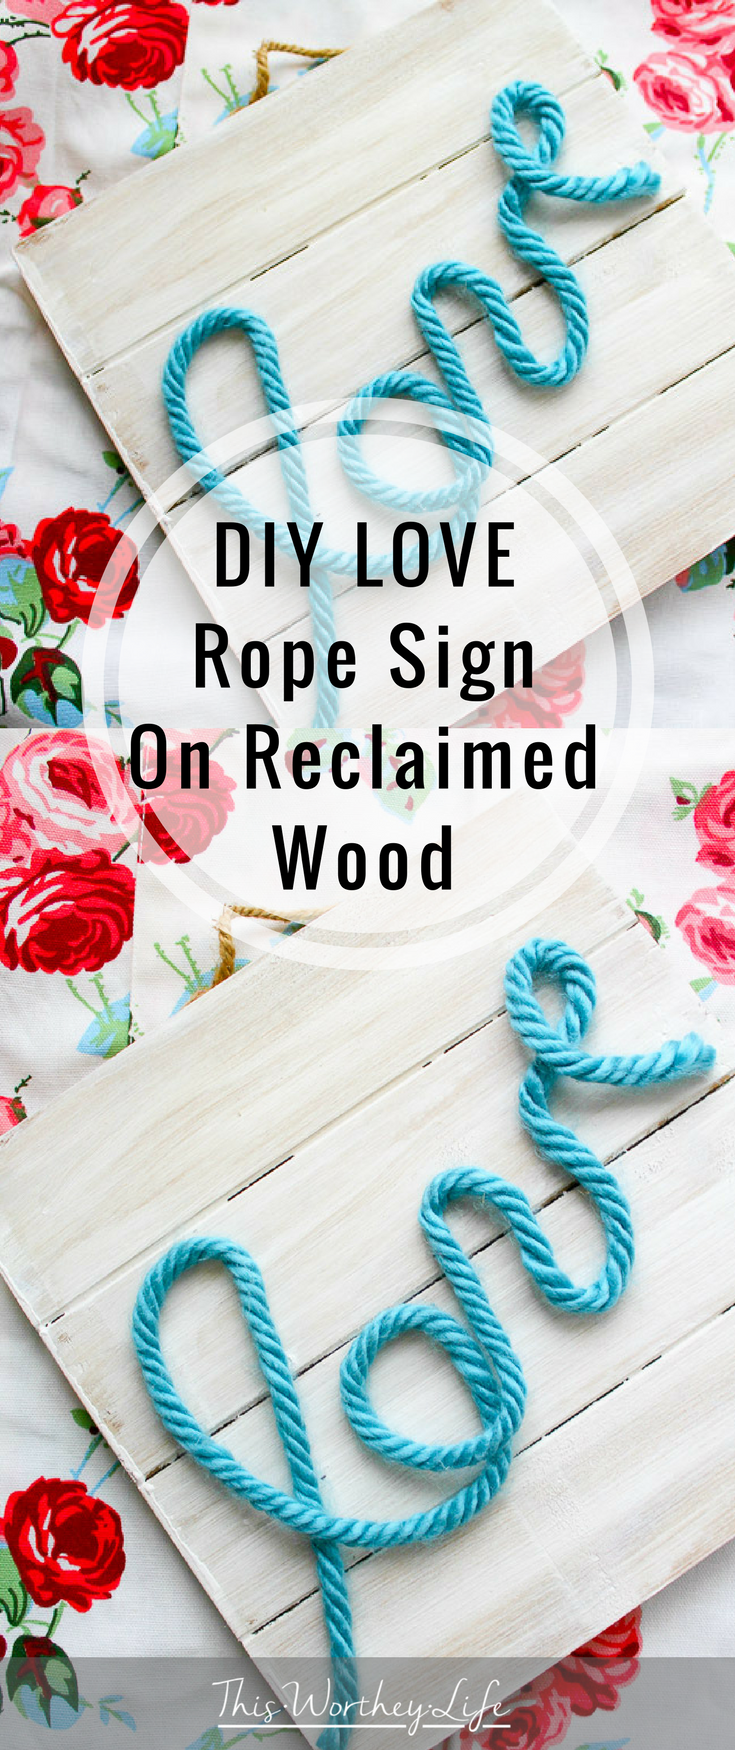 Here's a quick DIY you can do for Valentine's Day. With a piece of reclaimed wood, paint, and a few other accessories to put together this DIY Love Rope Sign.